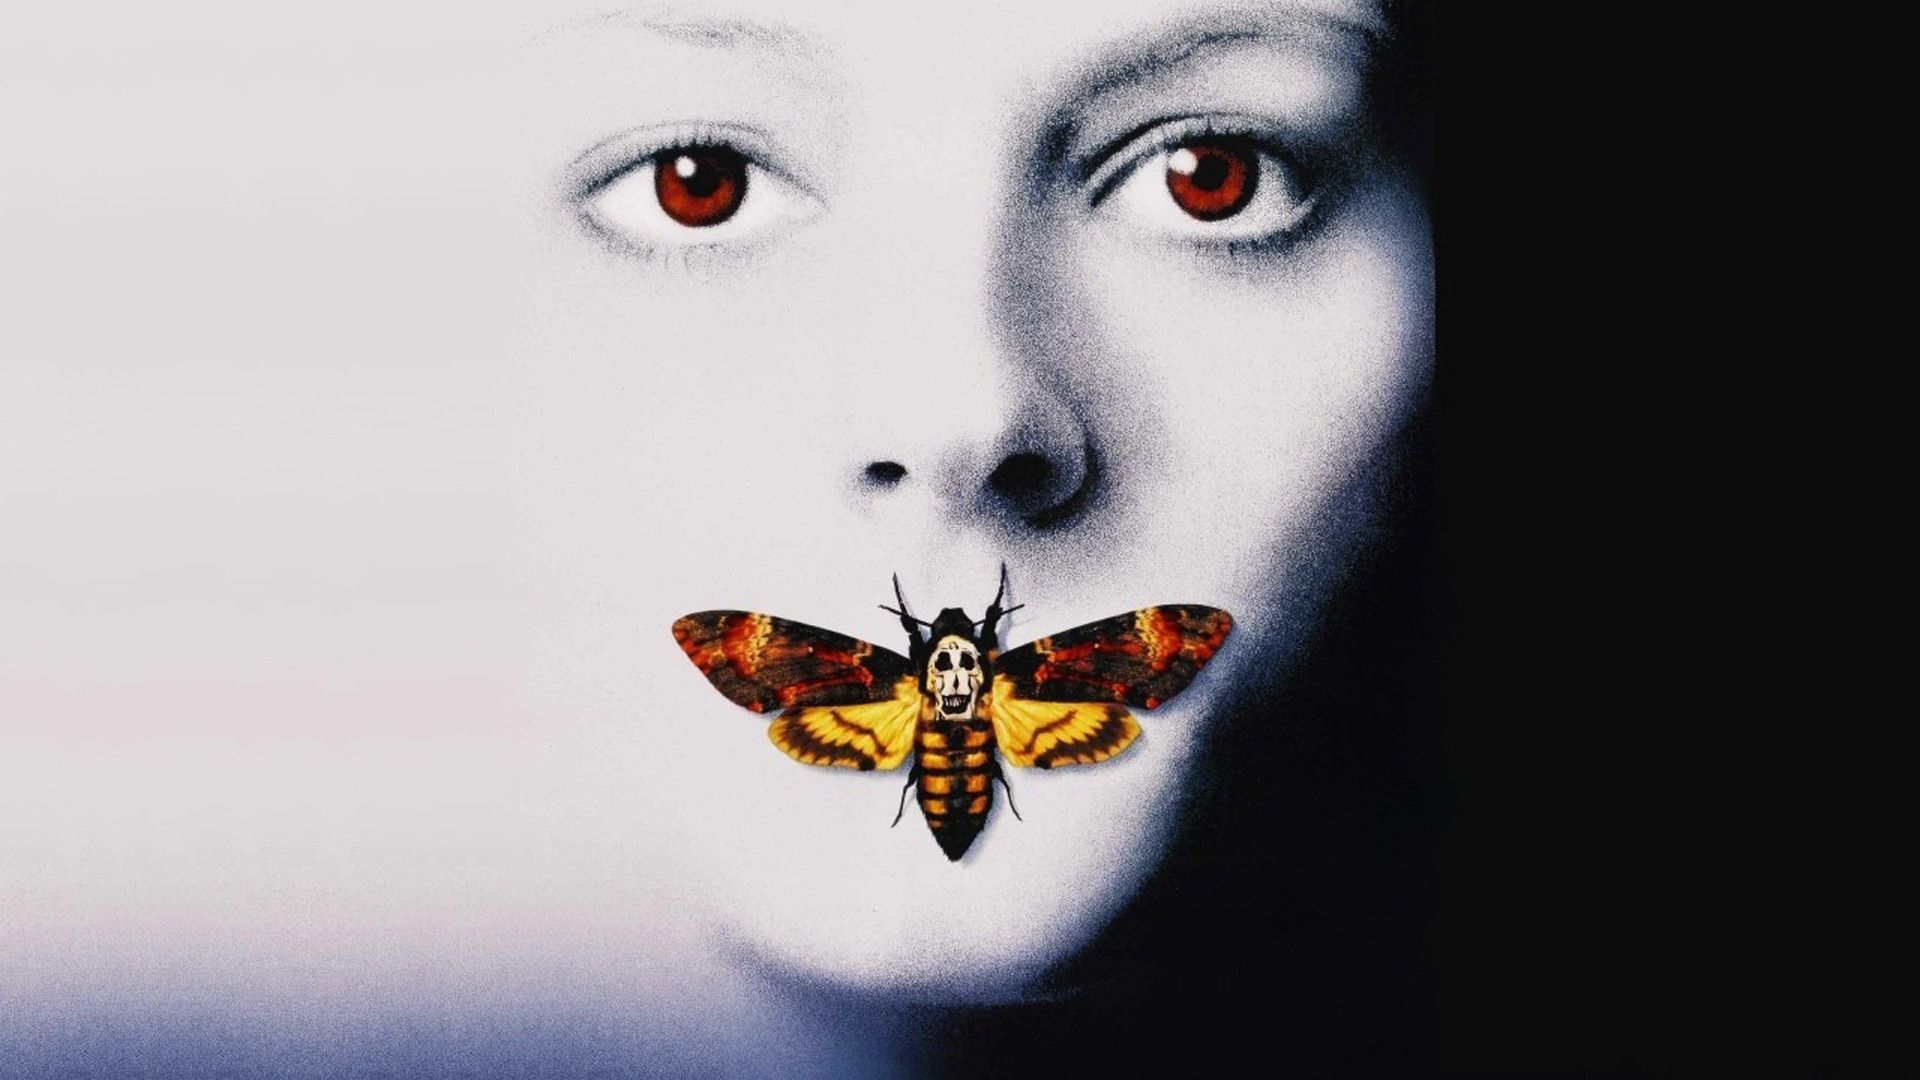 Silence Of The Lambs Wallpapers 1920x1080 17832 KB 1920x1080